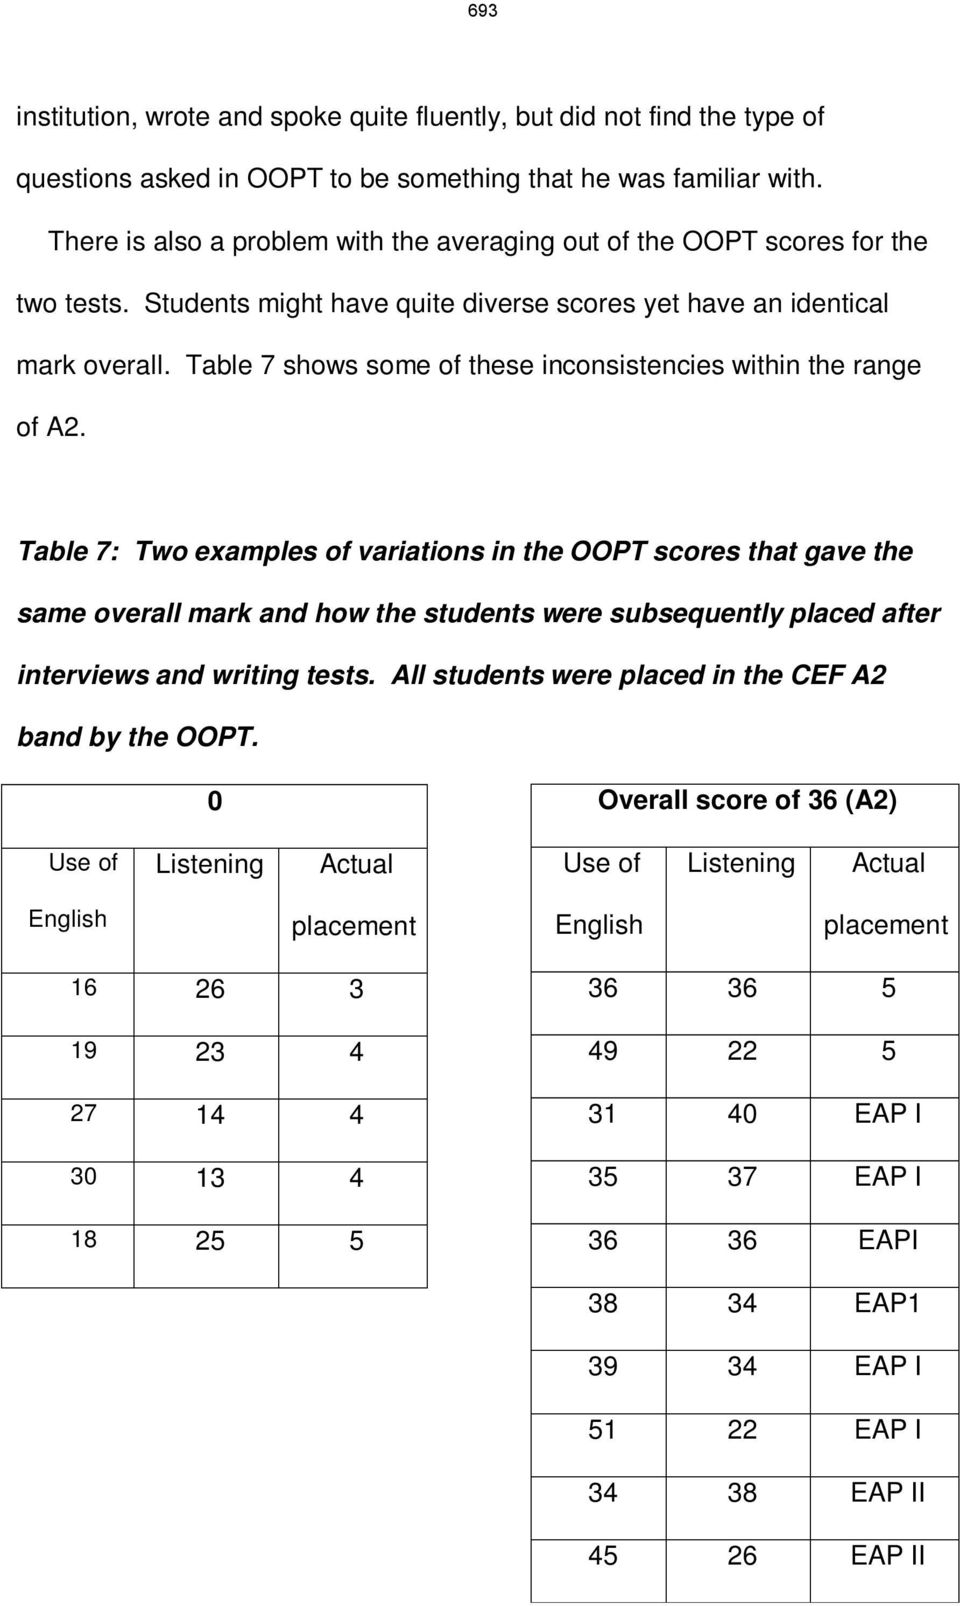 Table 7 shows some of these inconsistencies within the range of A2.